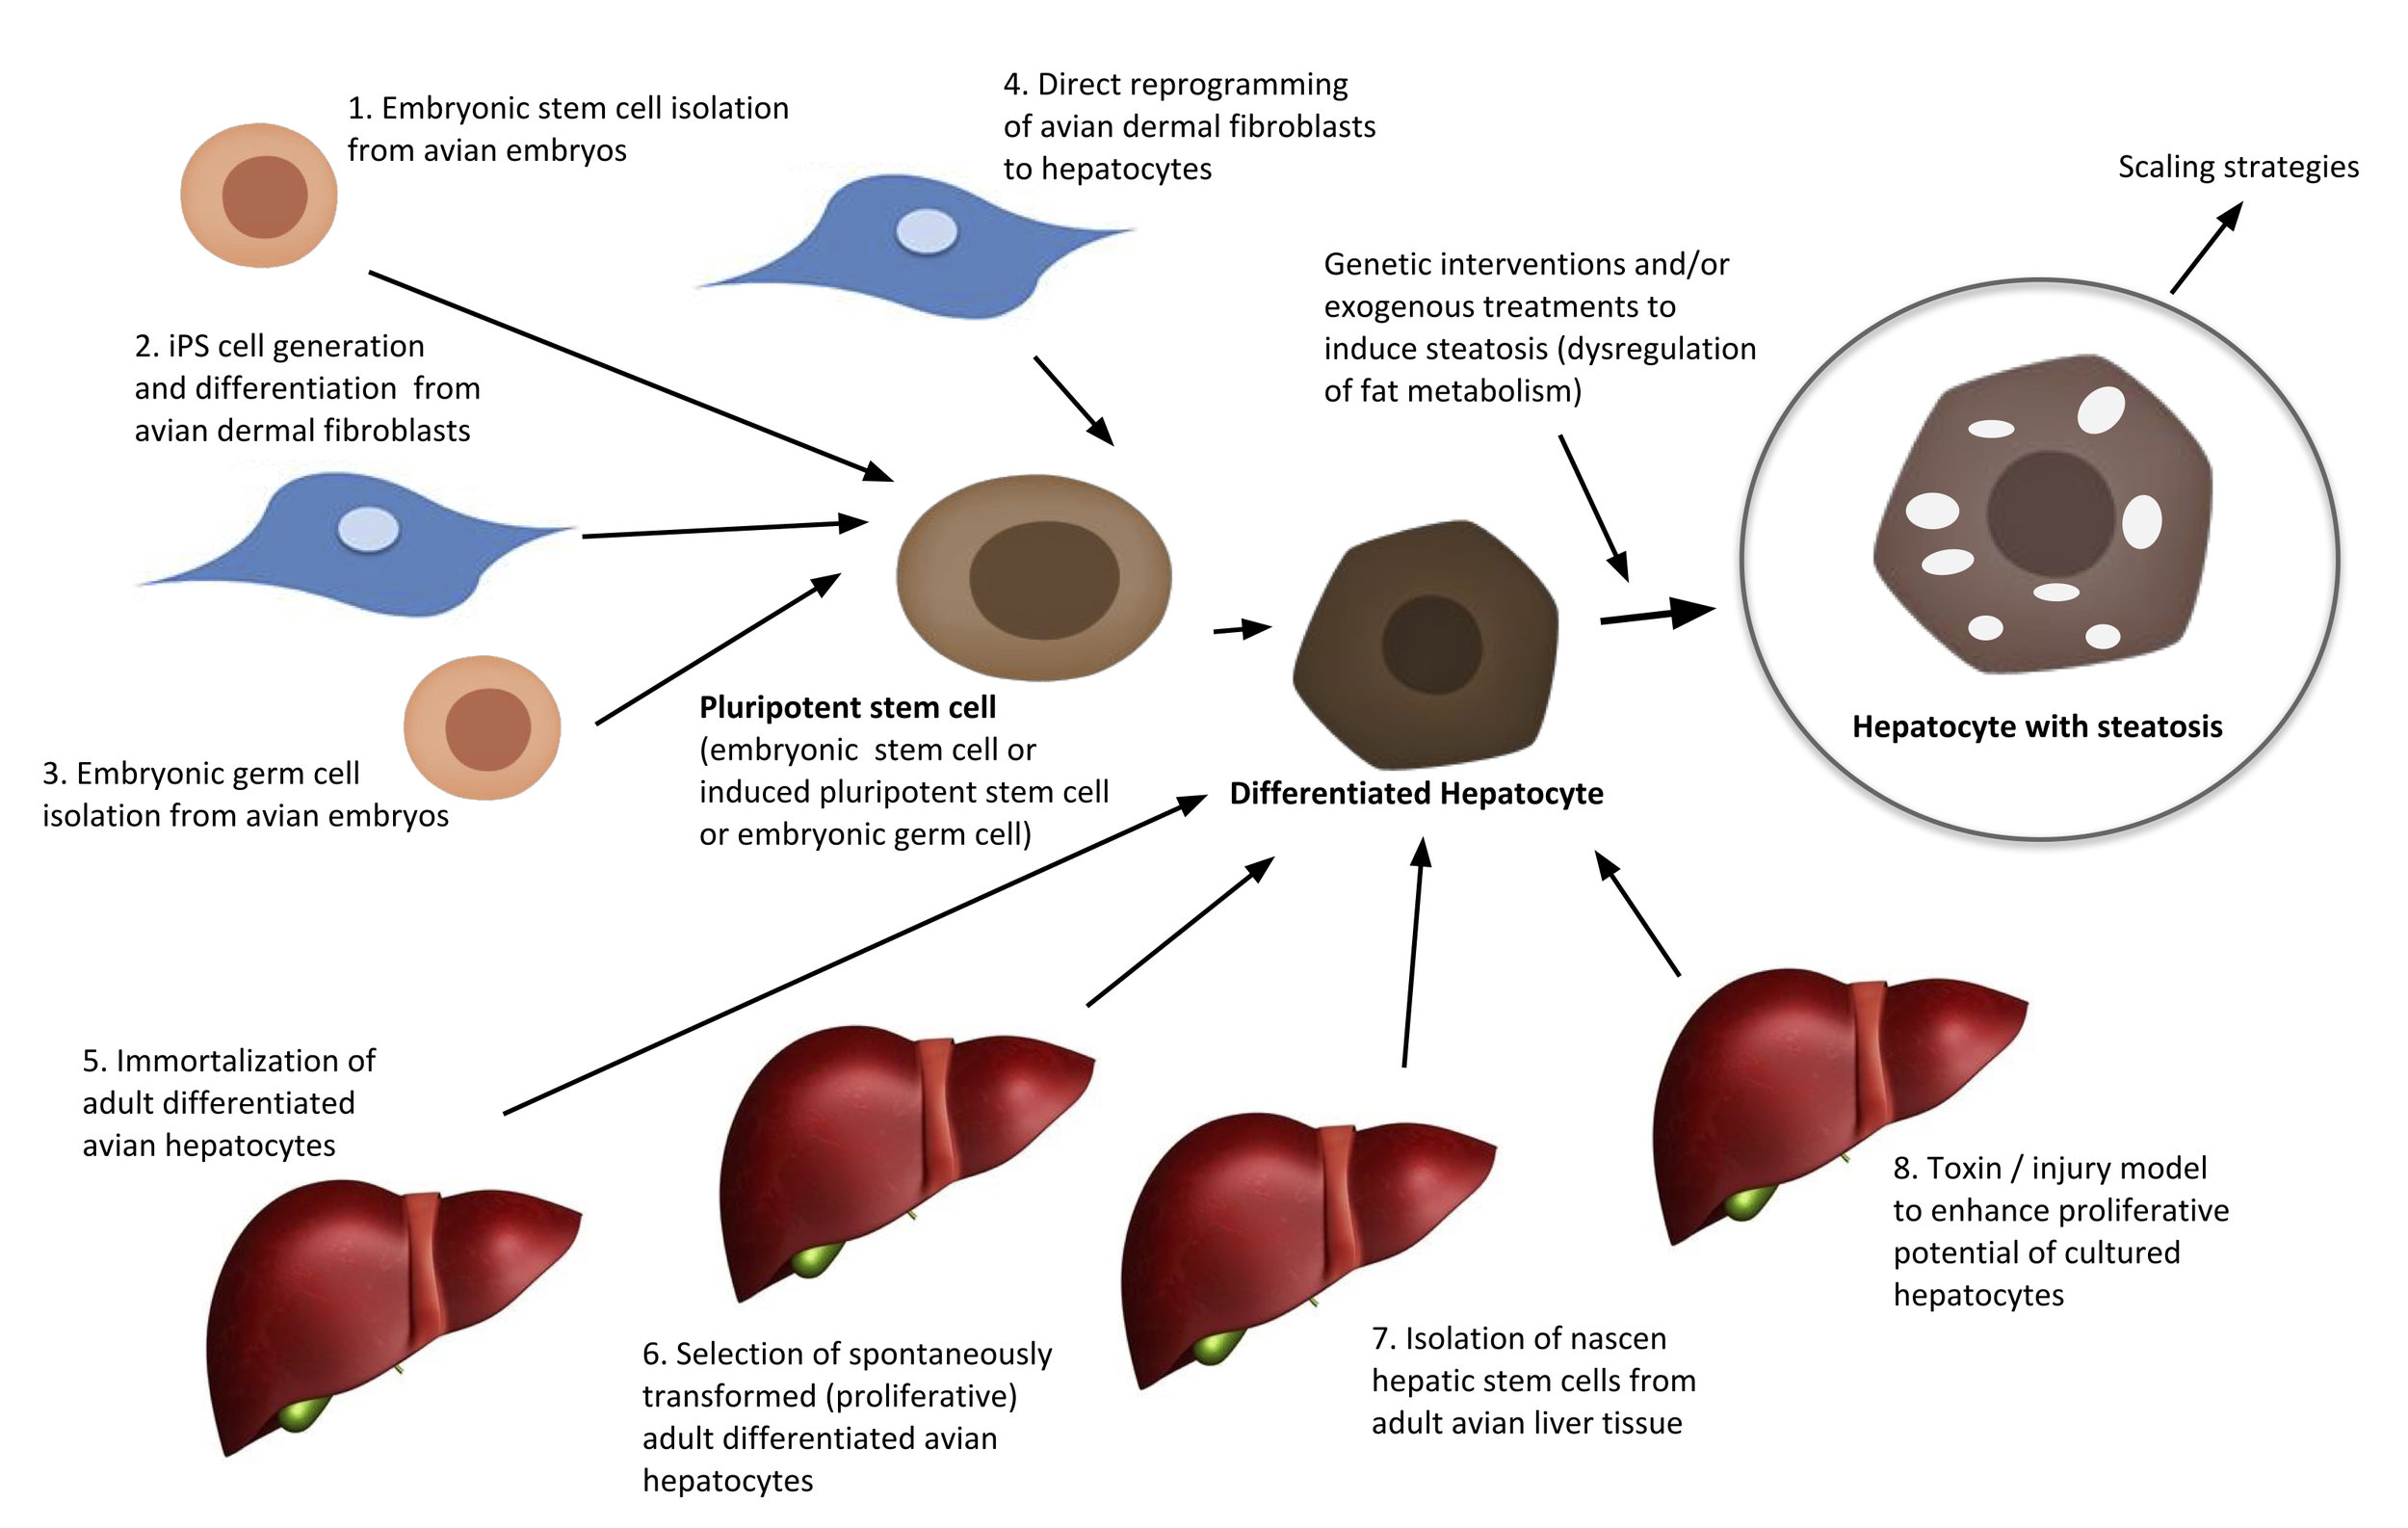 Figure 4a from the patent application, redrawn for readability. An illustration of the possible ways to get mature steatotic hepatocytes that can proliferate indefinitely.